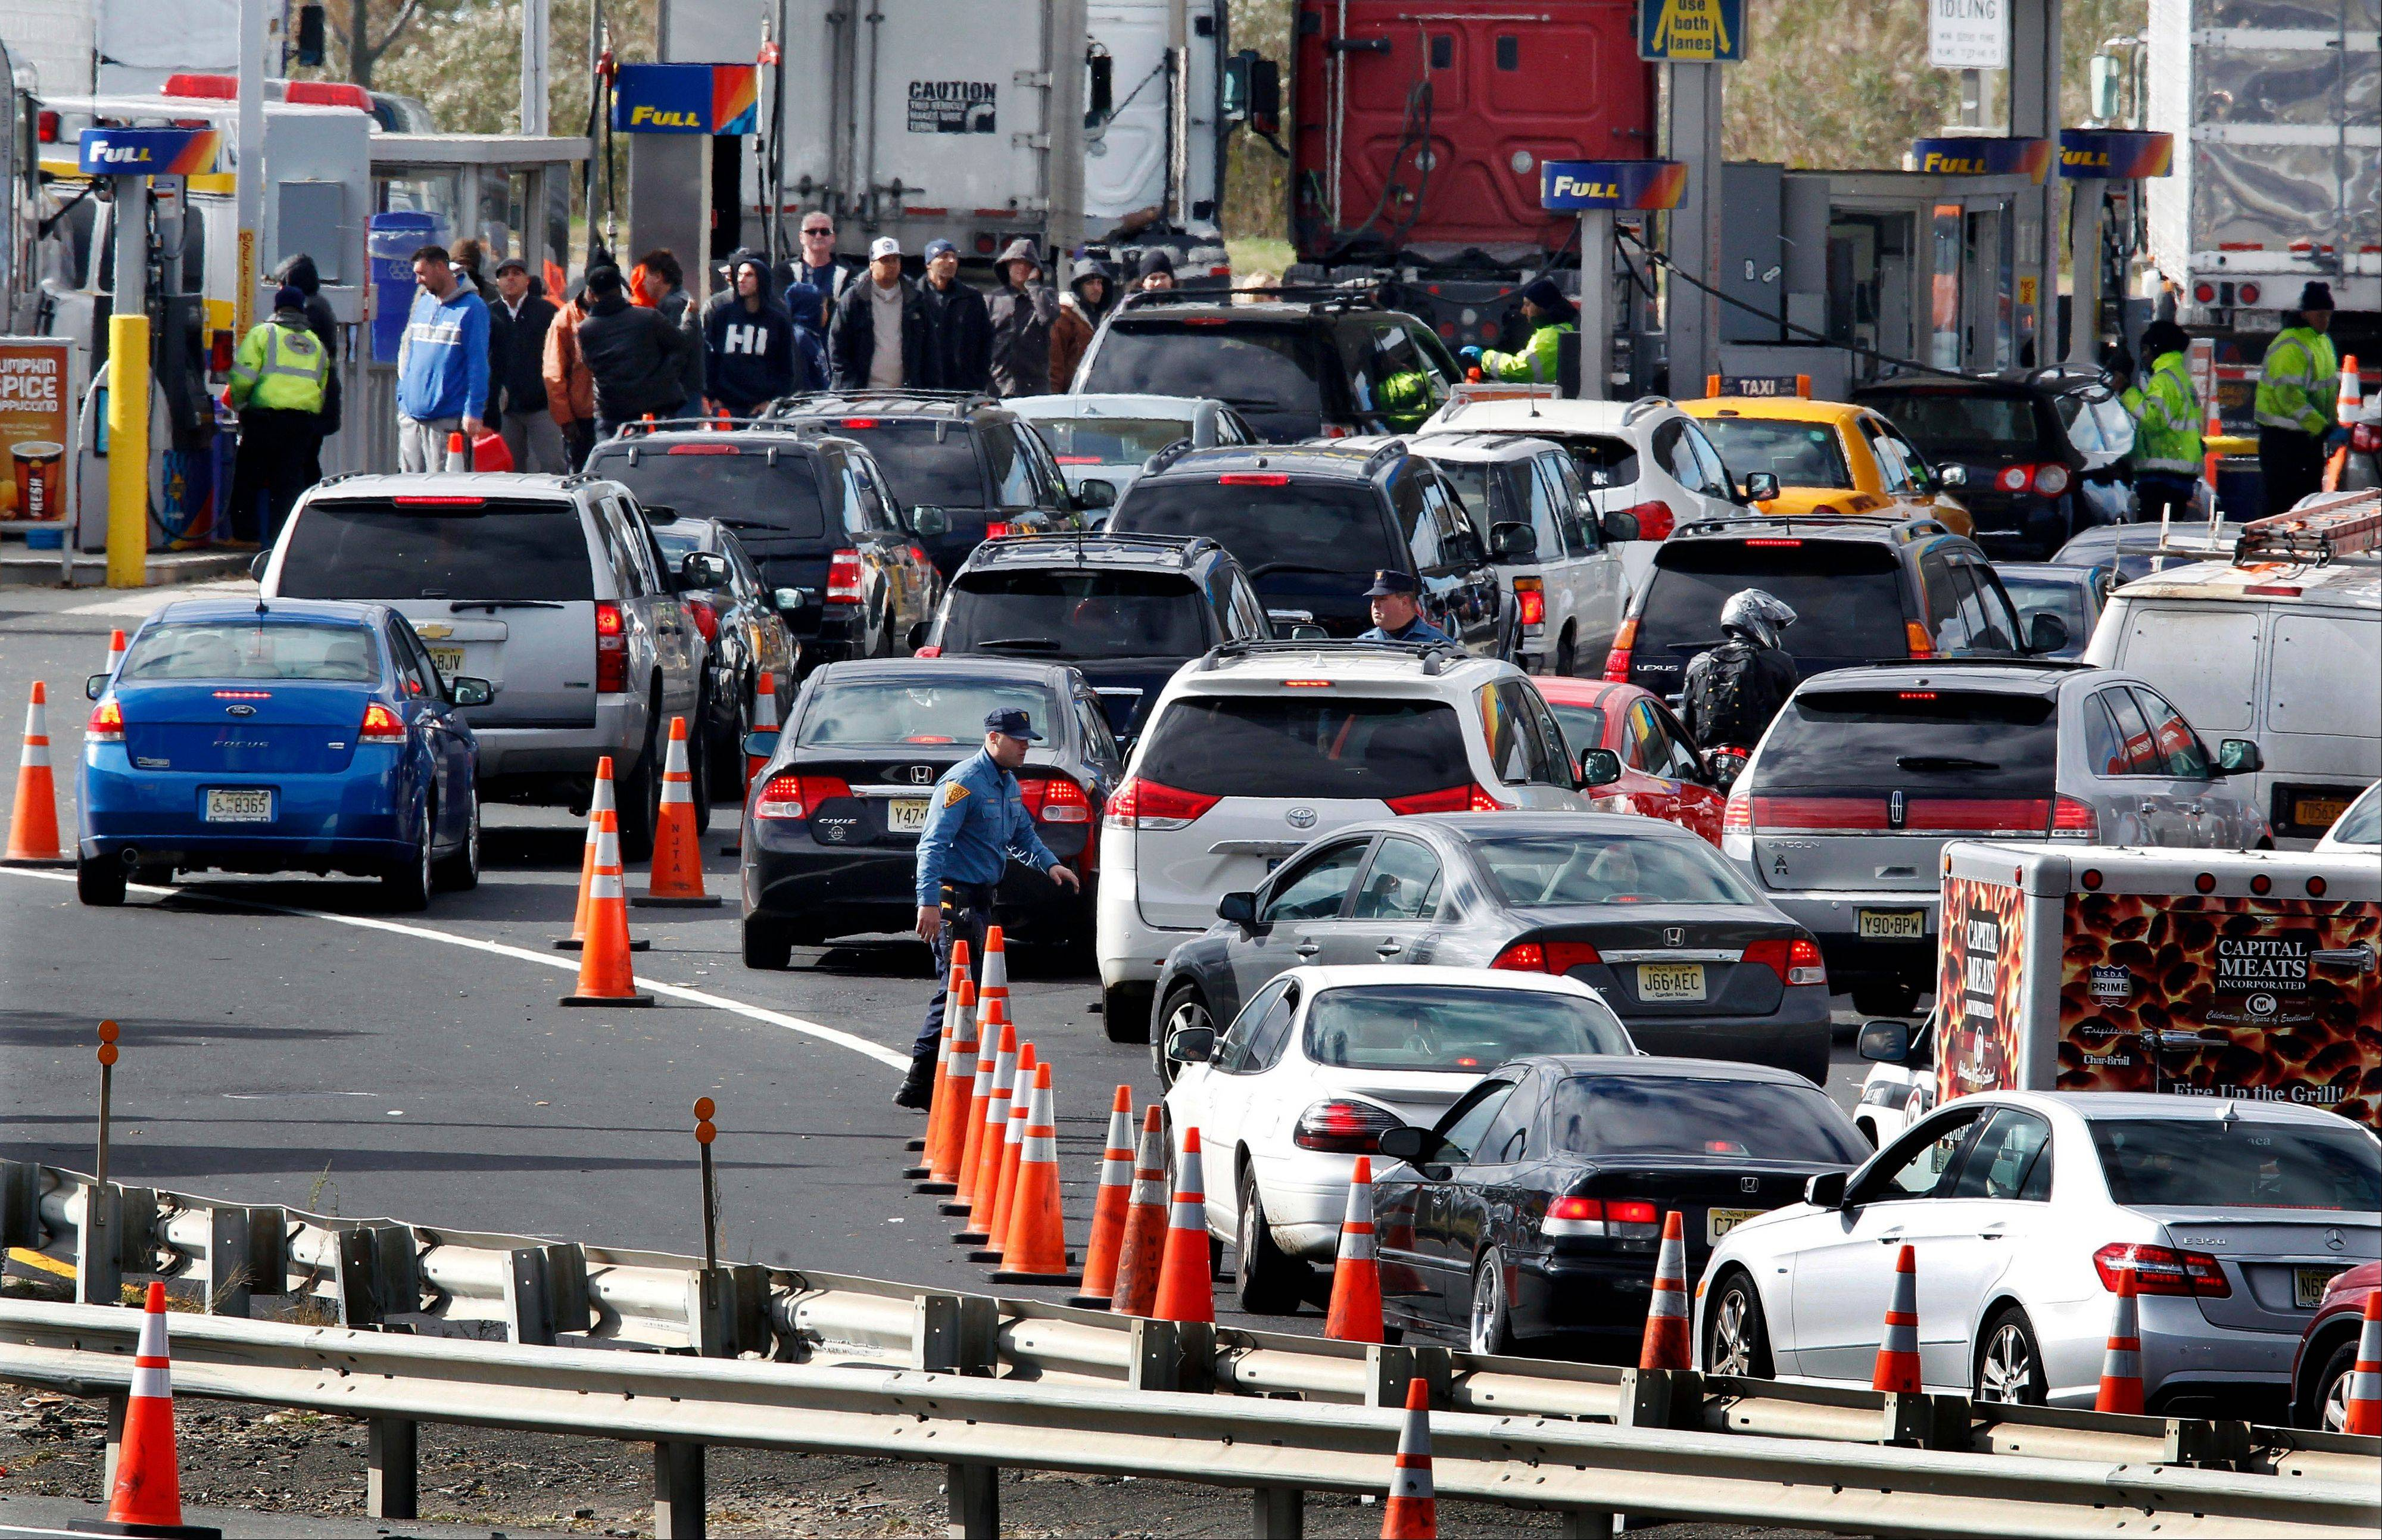 New Jersey state troopers keep order Saturday as motorists line up to purchase gasoline at the Thomas A. Edison service area on the New Jersey Turnpike.